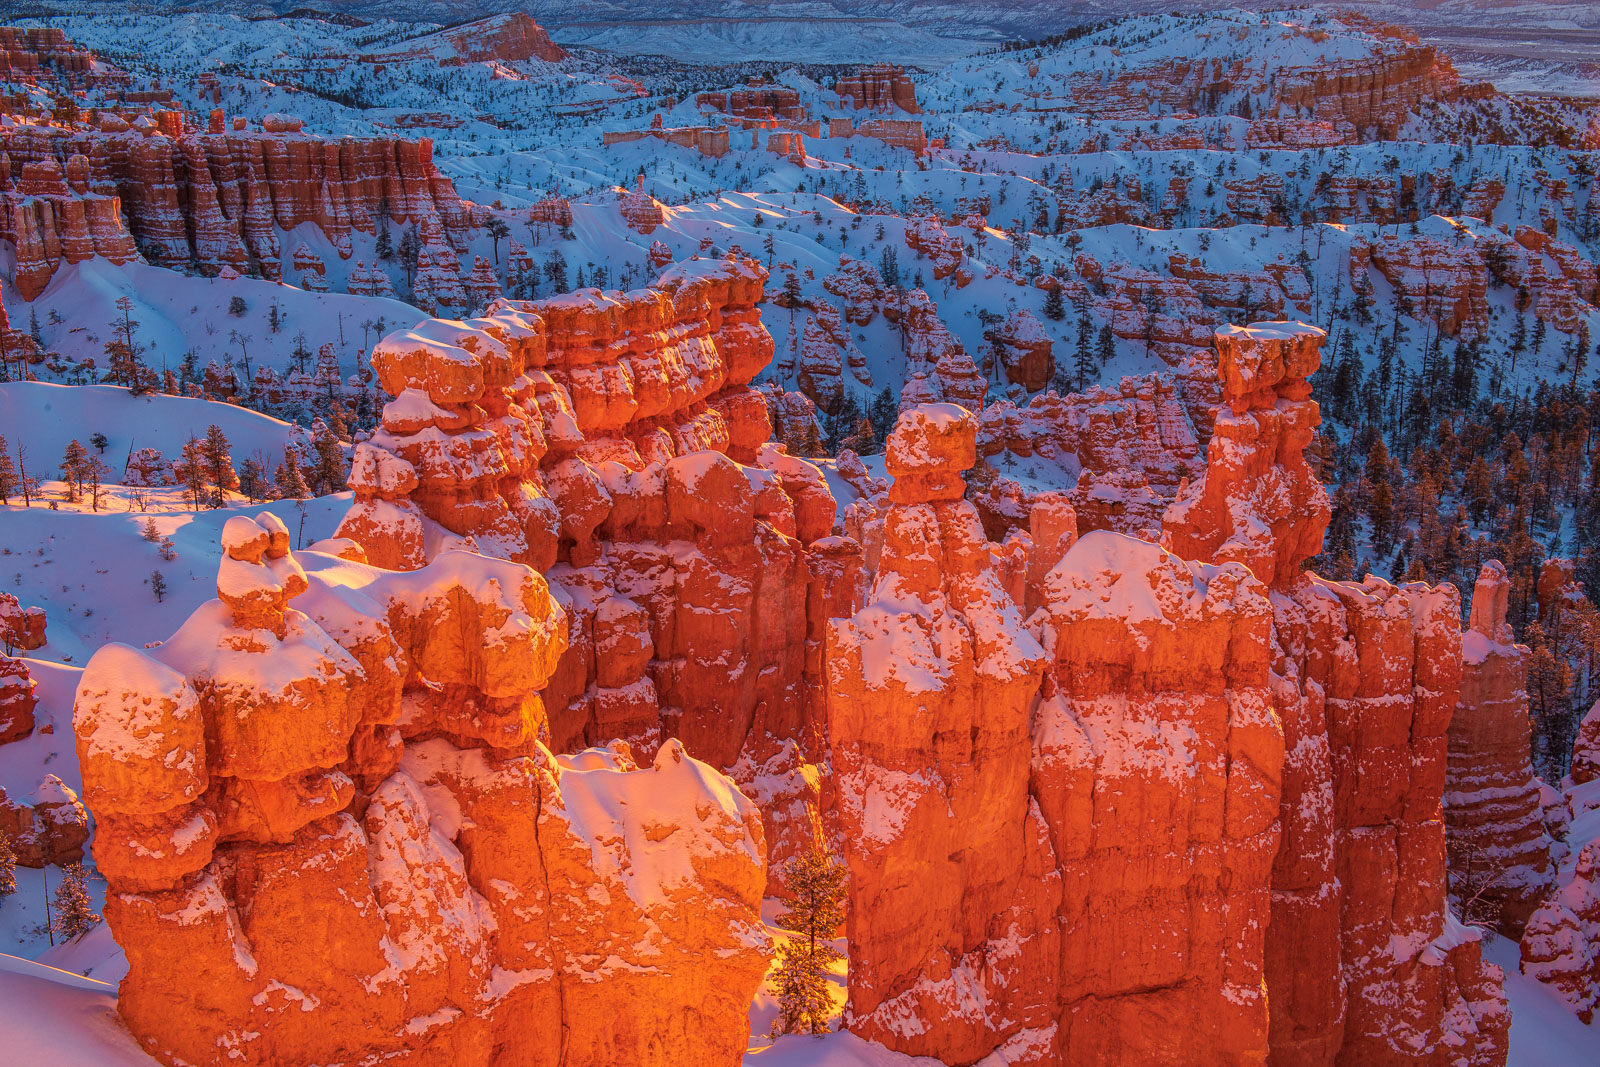 Glowing hoodos just after sunrise in Bryce Canyon National Park. Photographed after a heavy winter snowfall. Available Print...